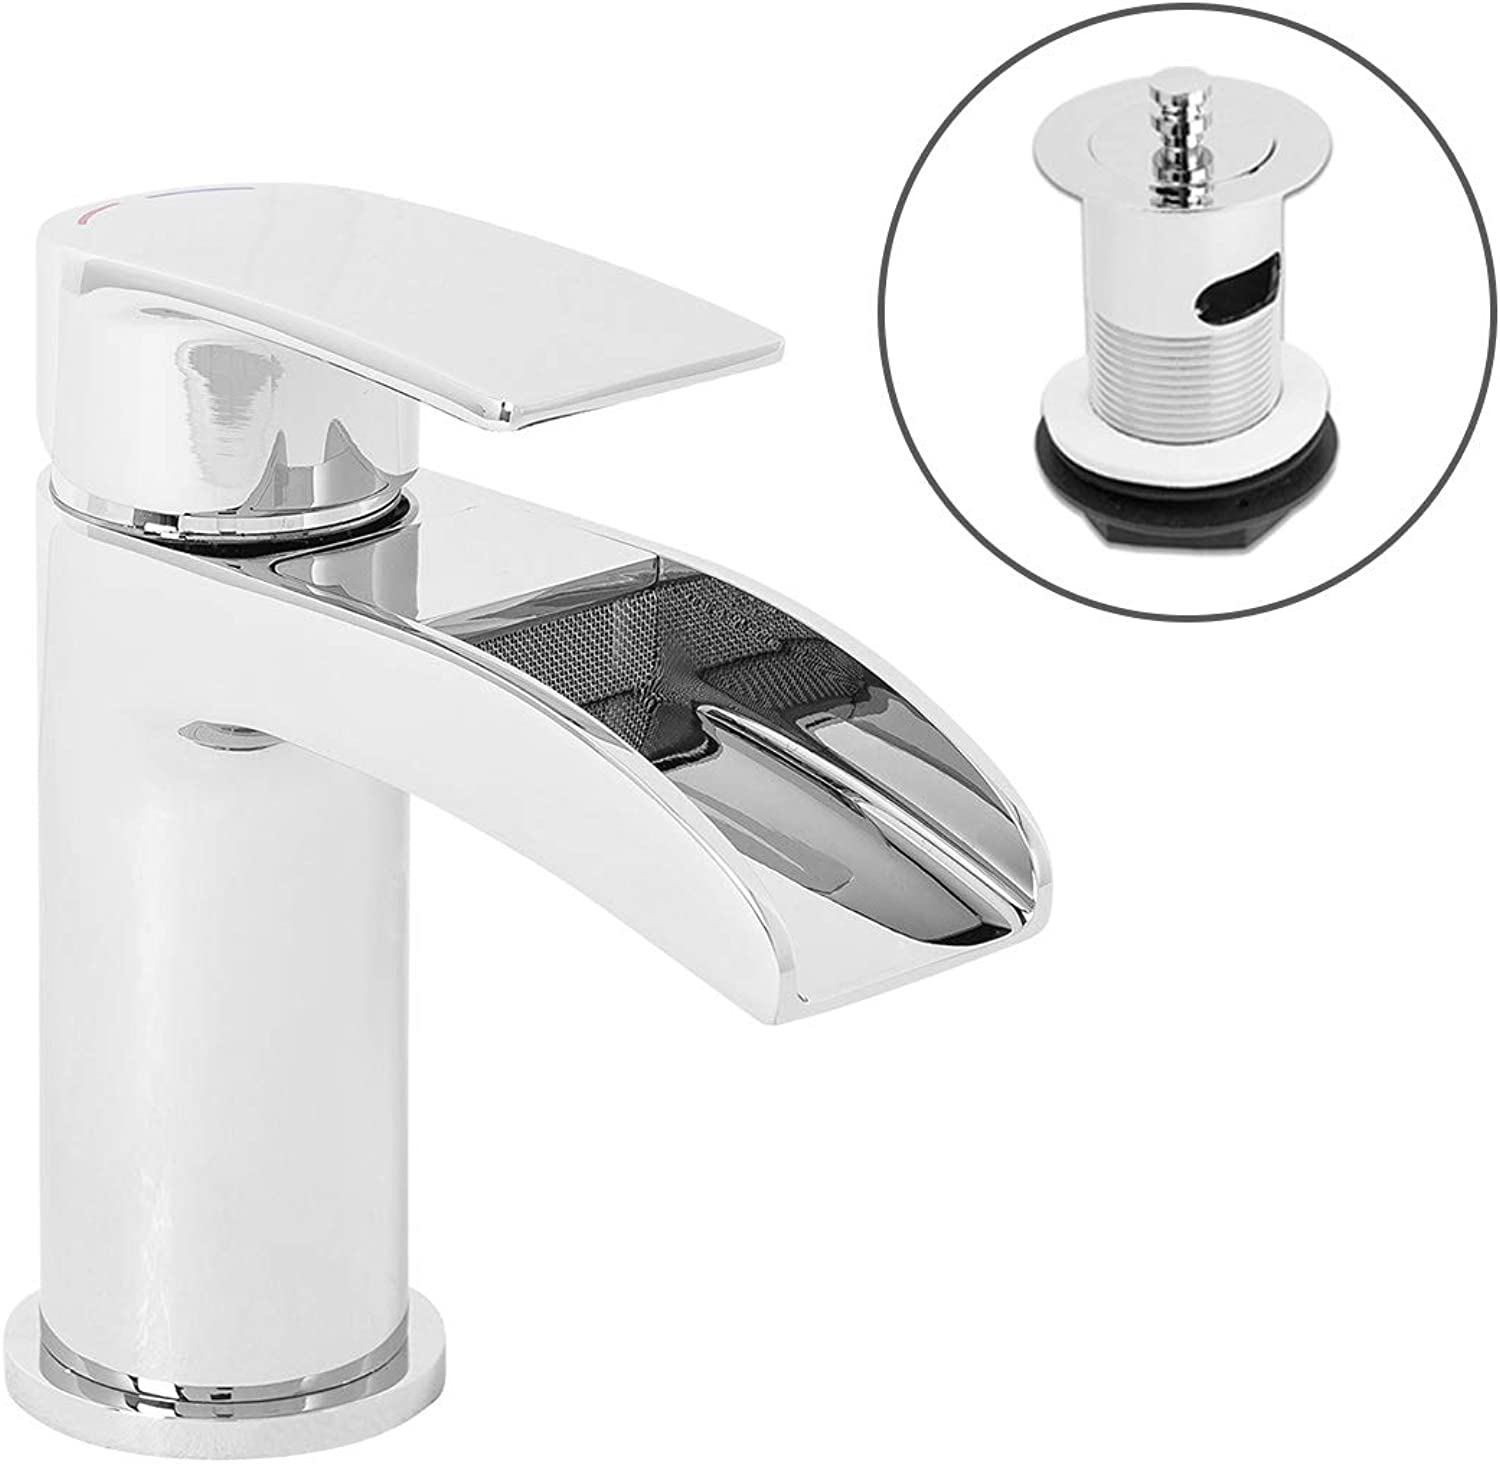 Modern Waterfall Mono Basin Sink Mixer Tap Bathroom Solid Brass Chrome Finish Lever Action